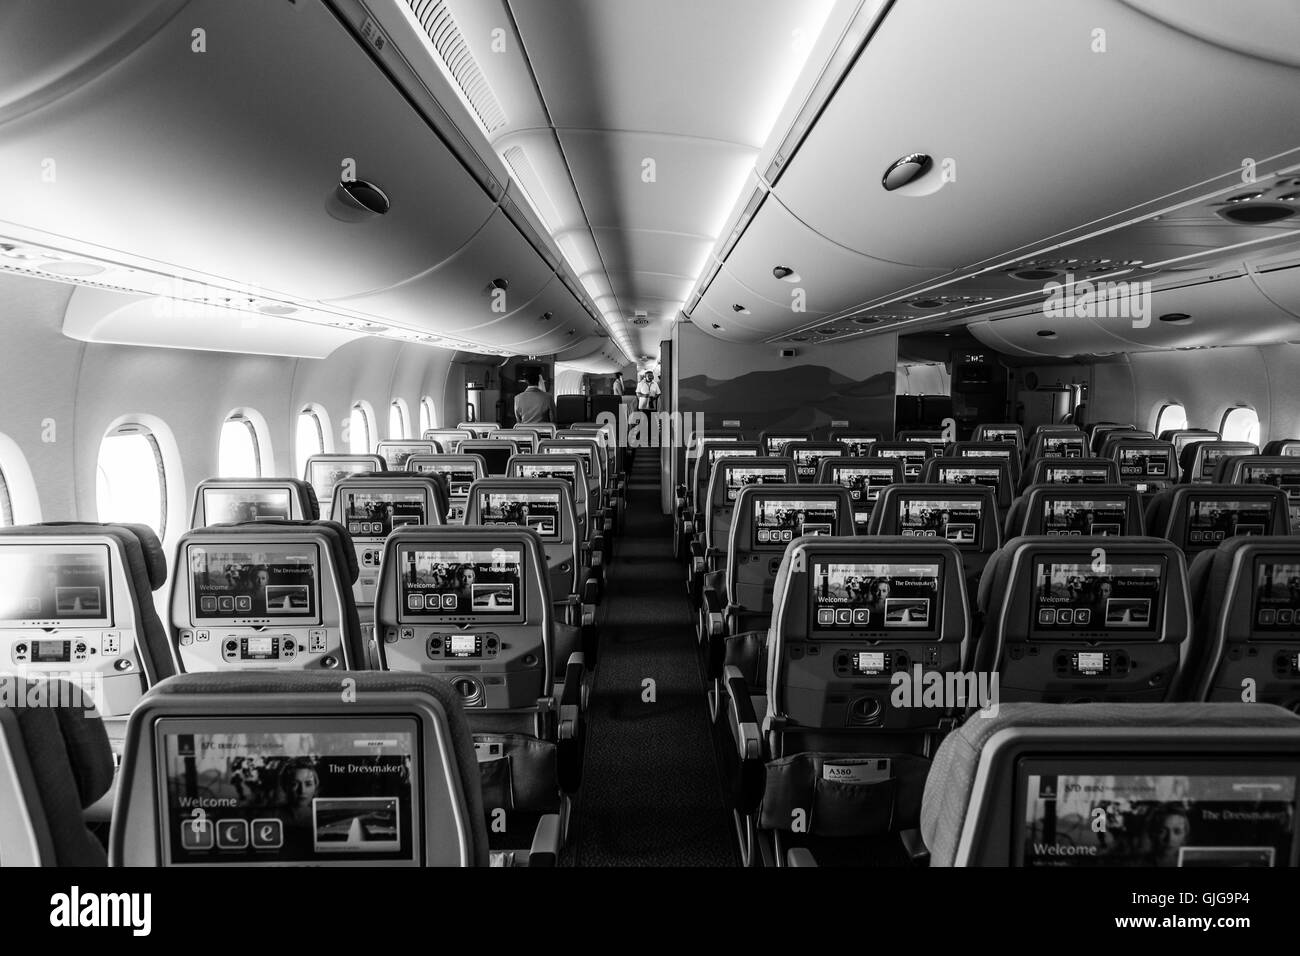 Airbus a380 interior stock photos airbus a380 interior for Airbus a380 emirates interior